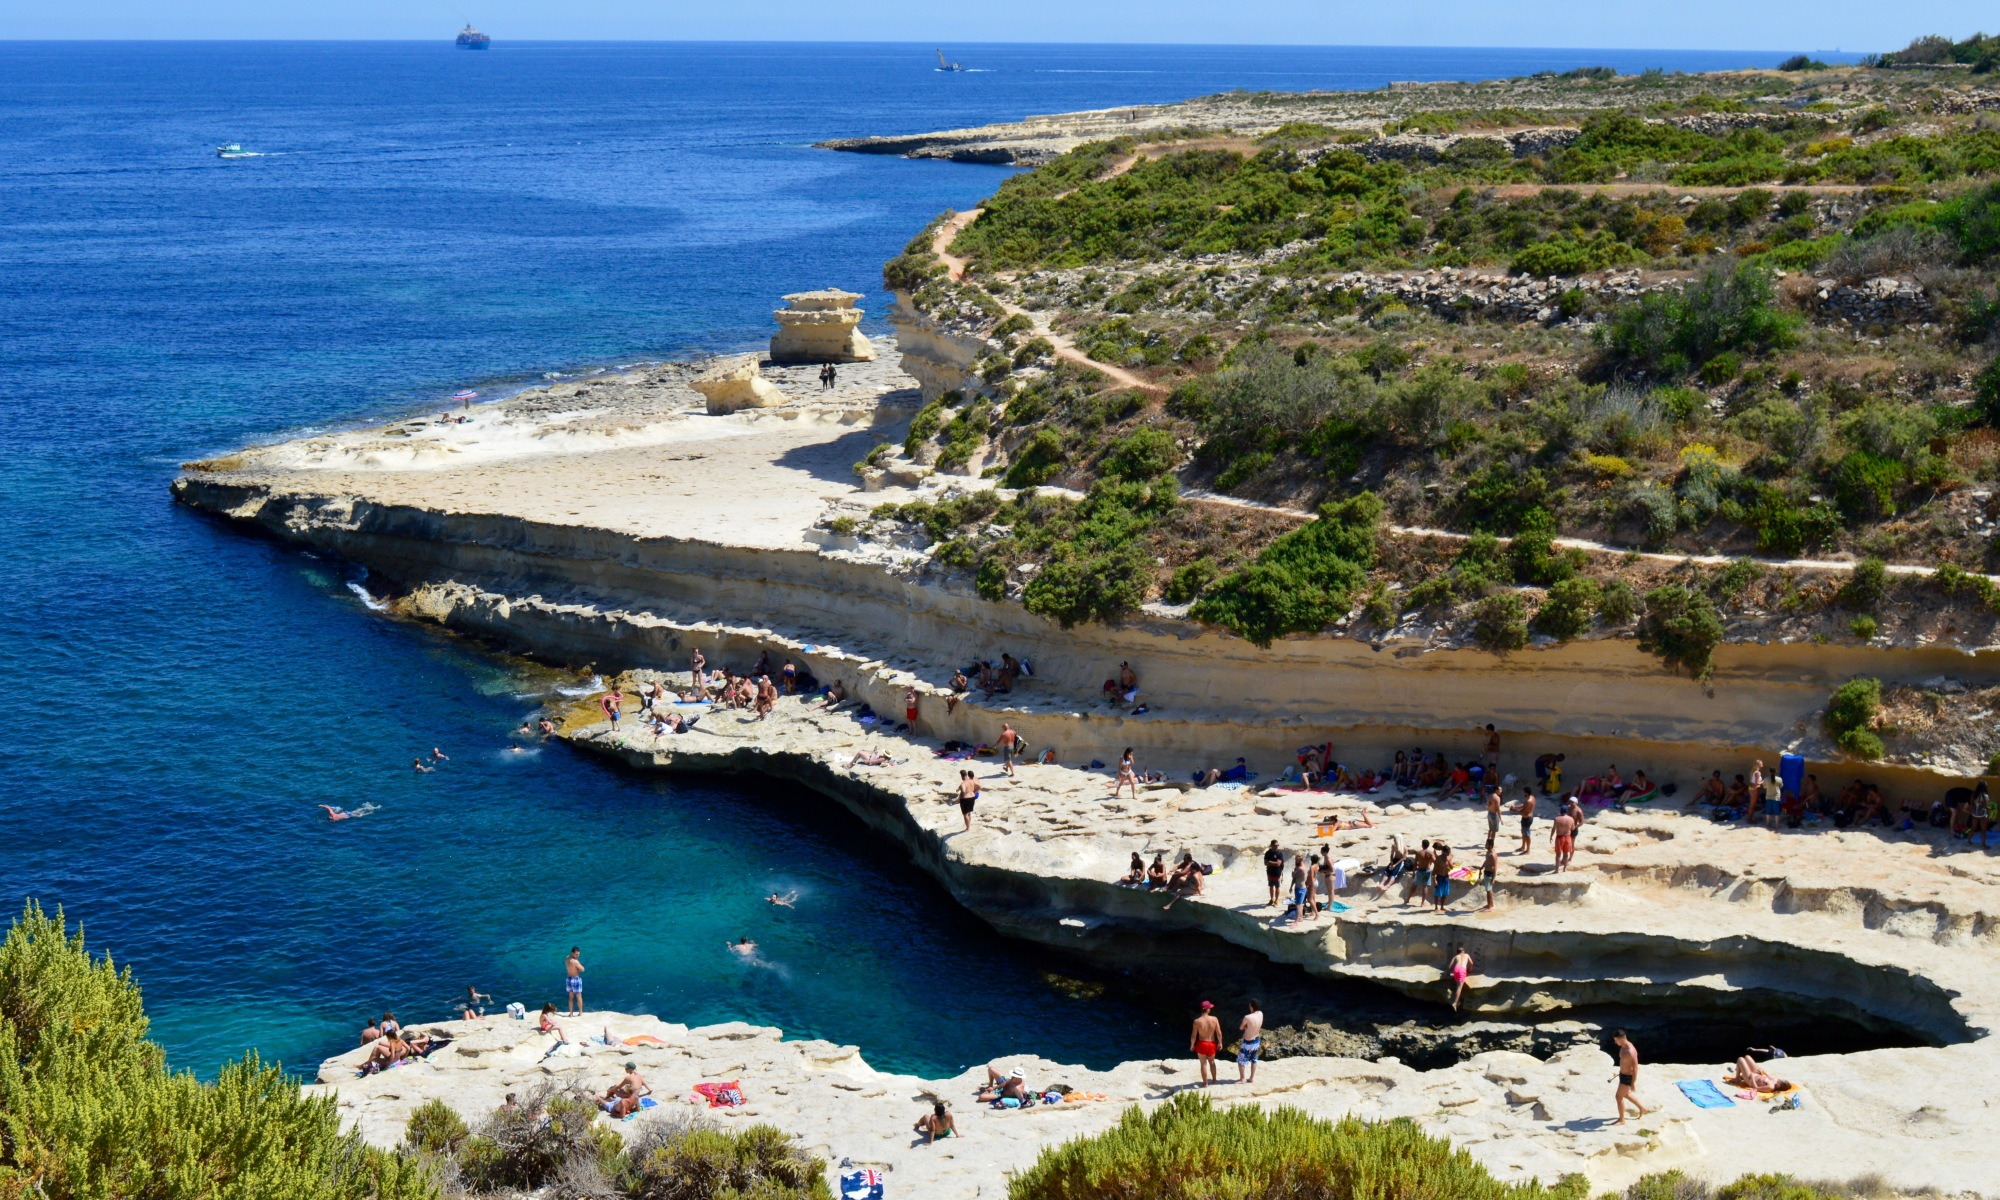 View of St. Peter's Pool in Malta.